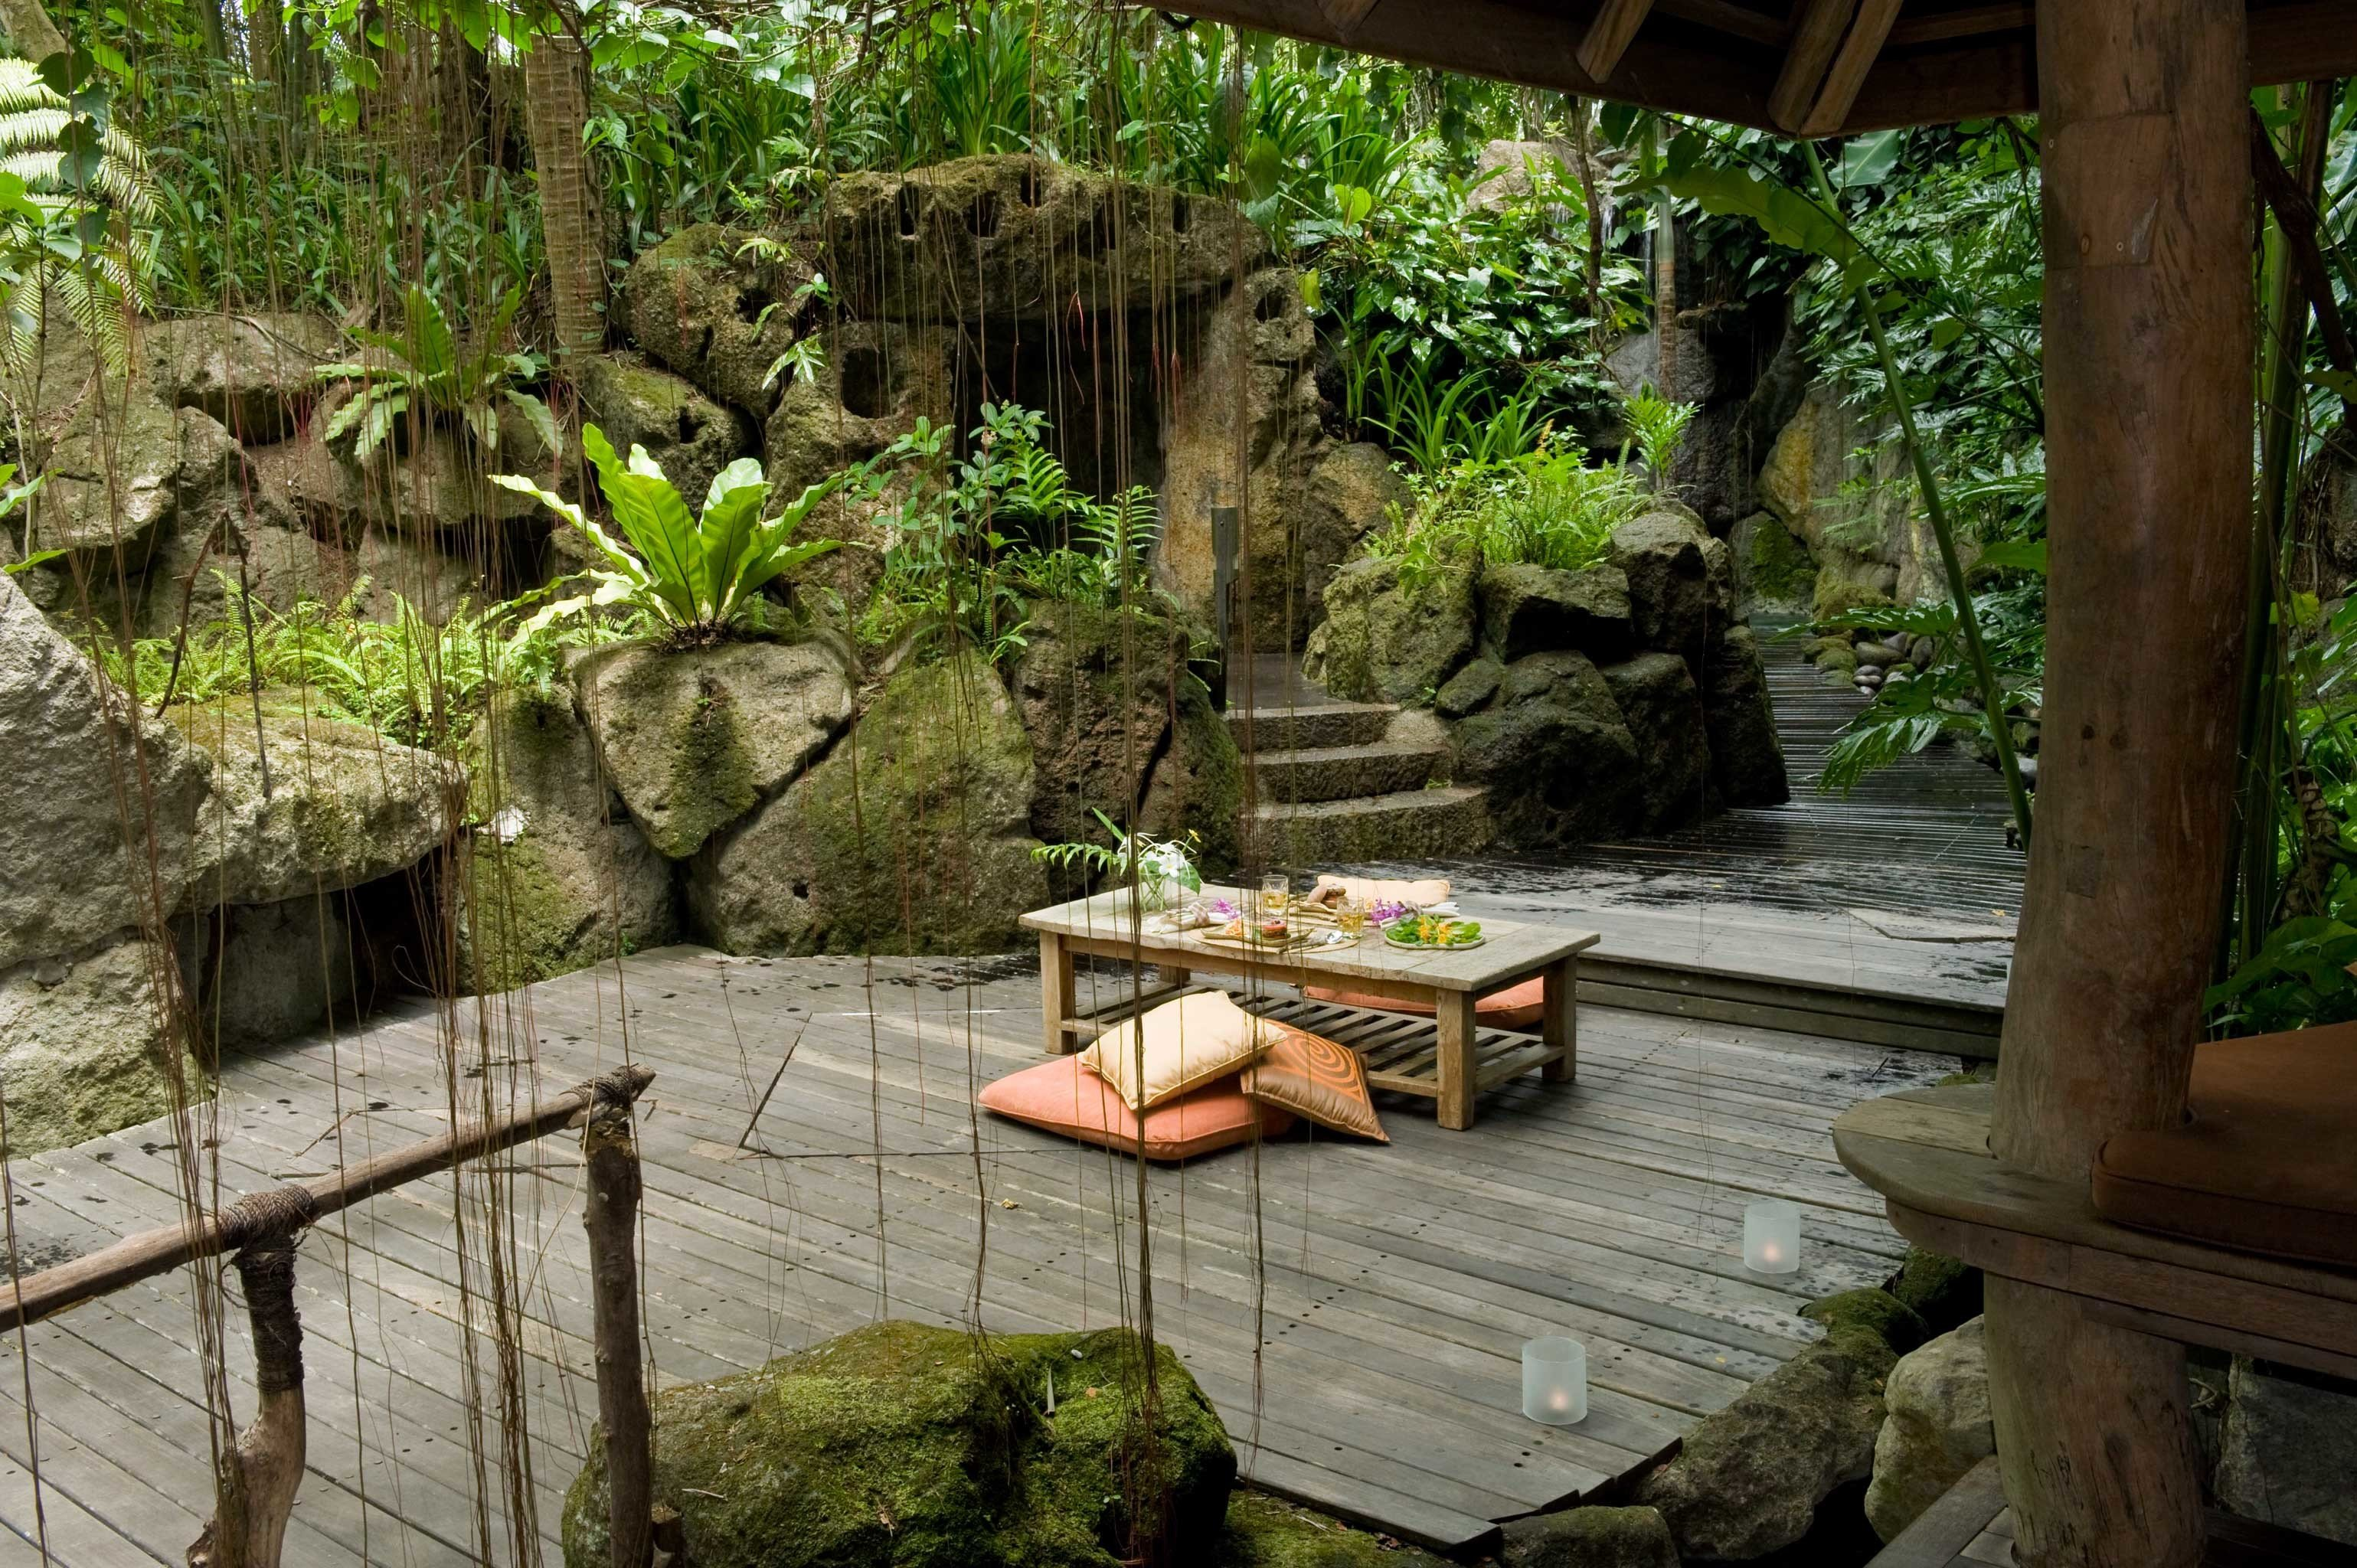 Dining Drink Eat Grounds Nature Outdoors Rustic Tropical tree wooden backyard botany Garden Jungle yard Courtyard outdoor structure pond